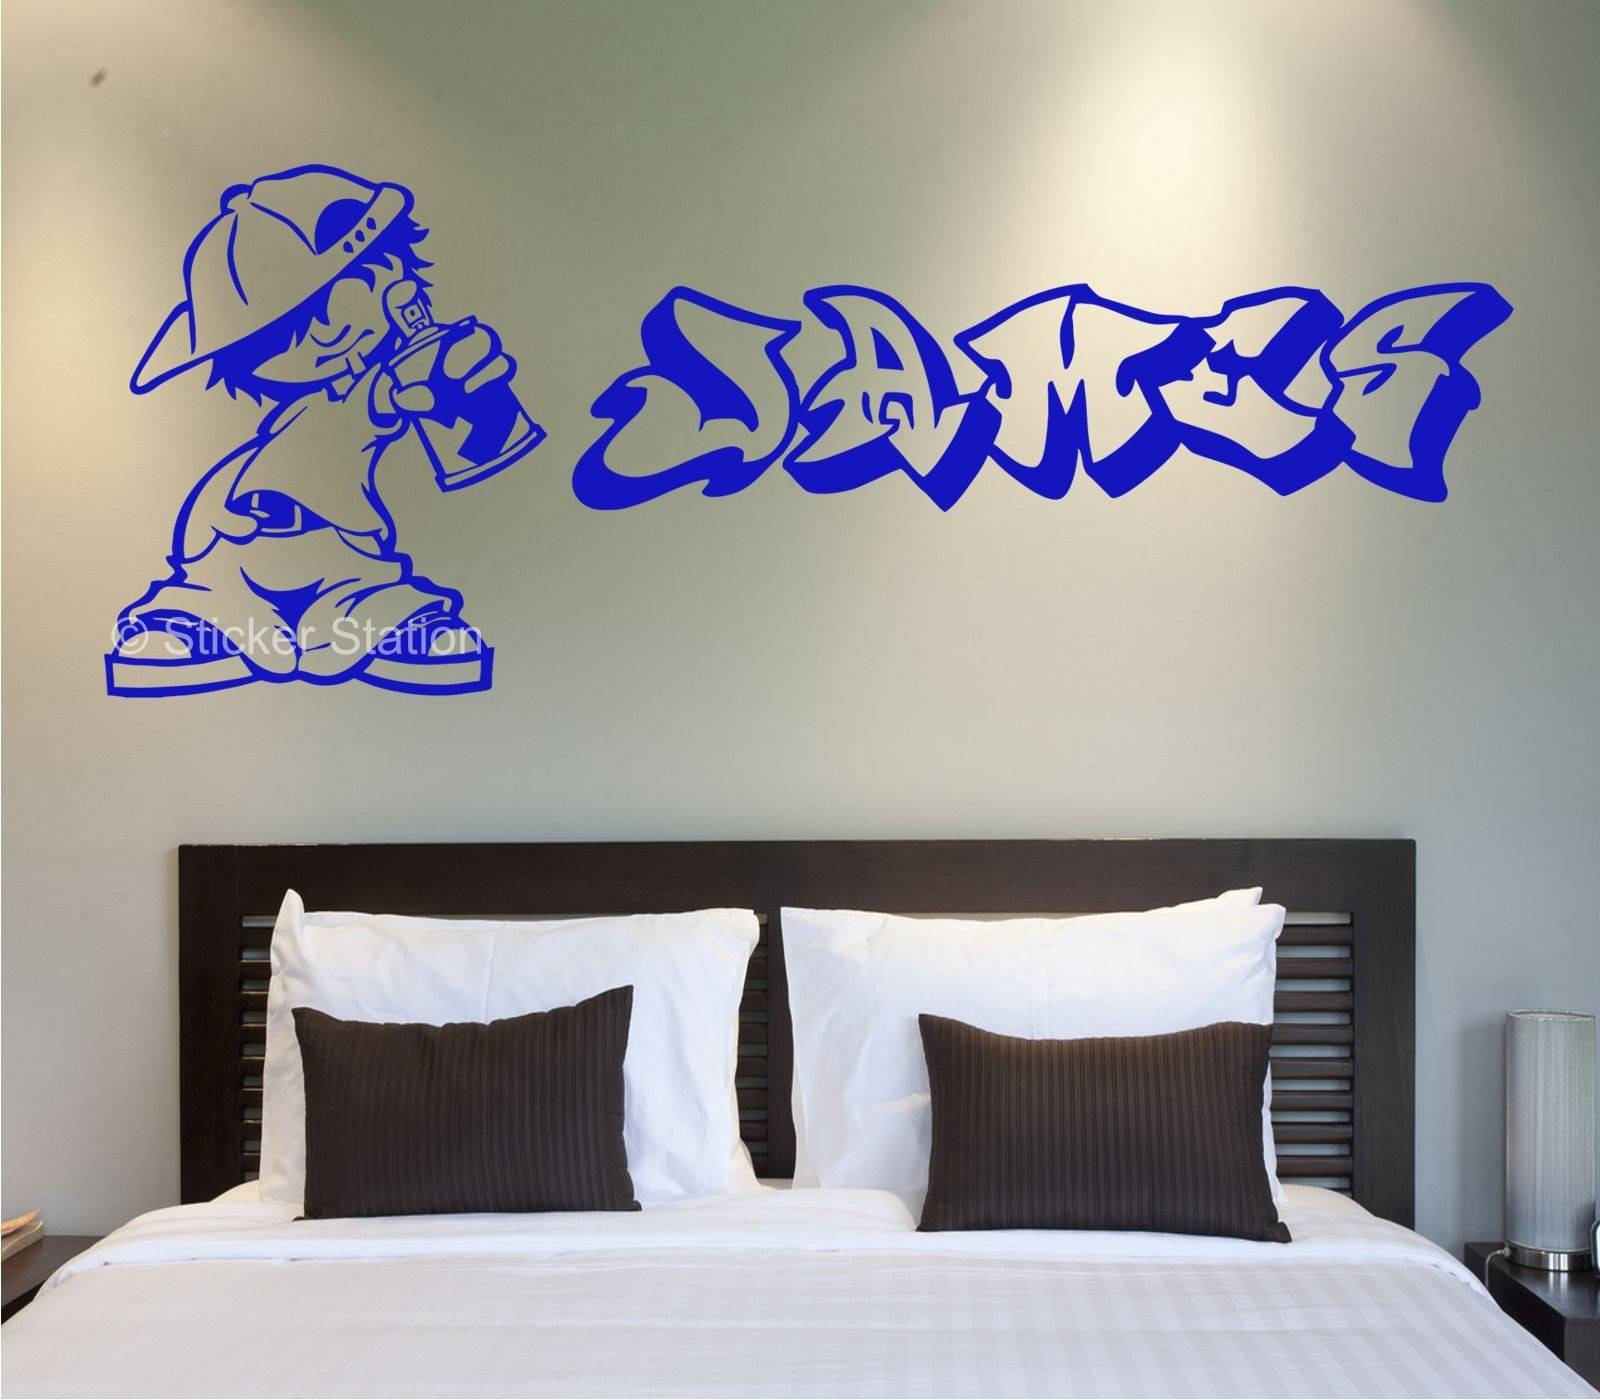 Graffiti Artist Personalised Wall Art Sticker – Sticker Station Throughout Most Popular Personalized Graffiti Wall Art (View 6 of 30)